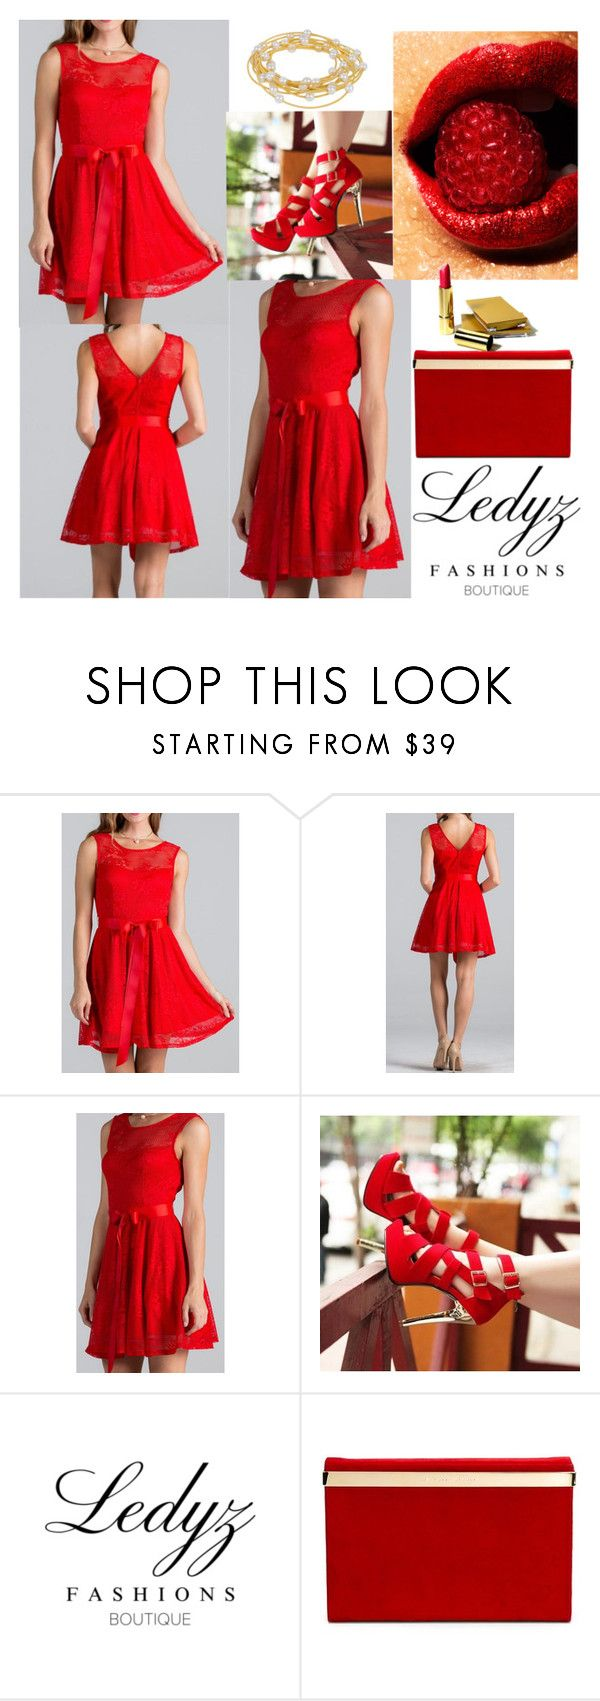 """""""bj"""" by biebergirl1013 ❤ liked on Polyvore featuring Charlotte Olympia, Sugar NY and LedyzFashions"""